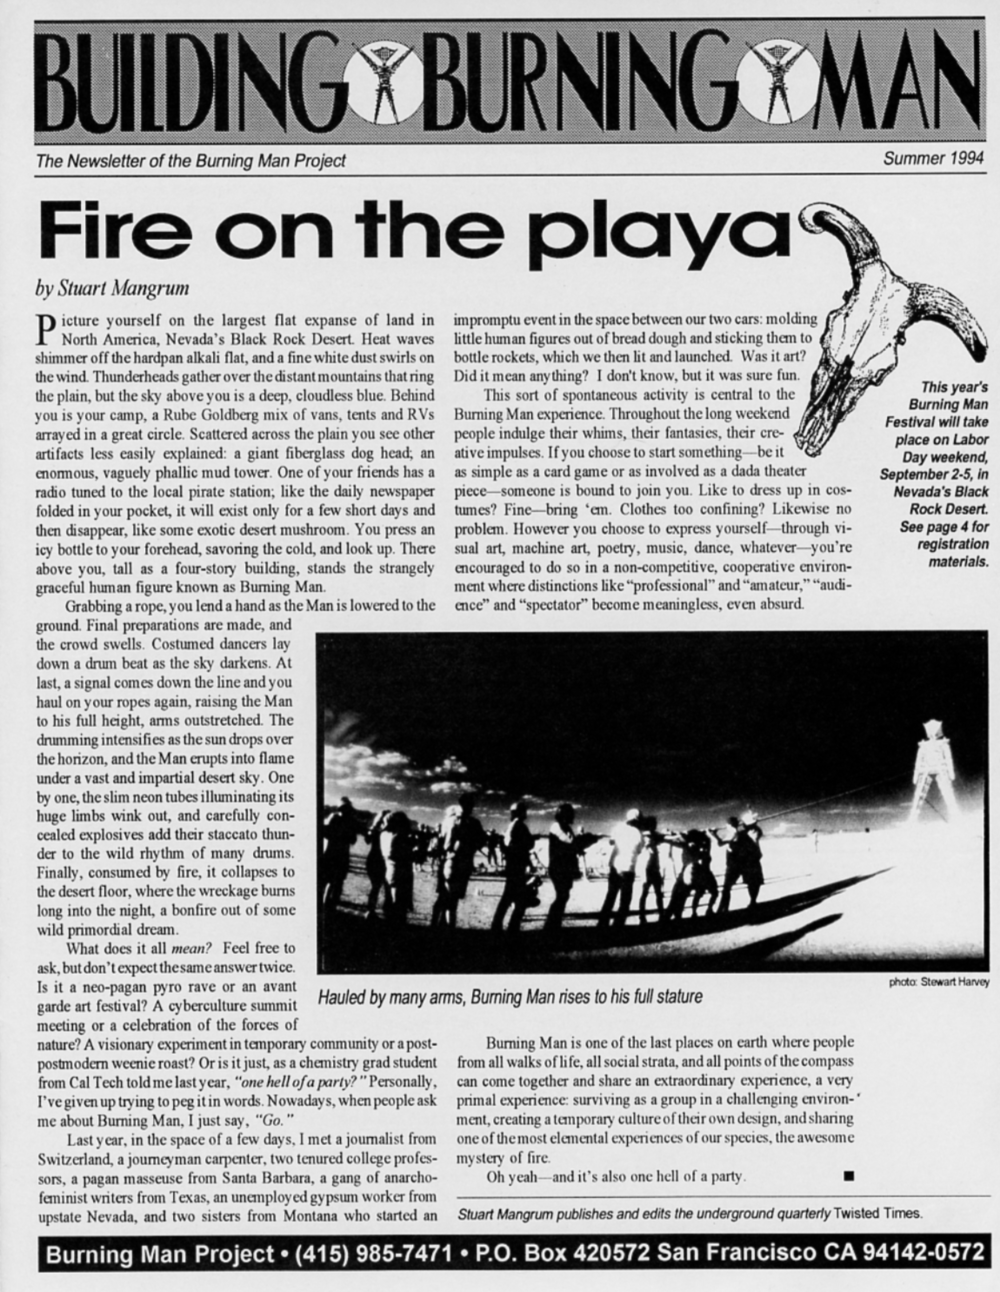 The 2nd Building Burning Man, featuring an interview of Larry Harvey by Larry Harvey (using his pen name)